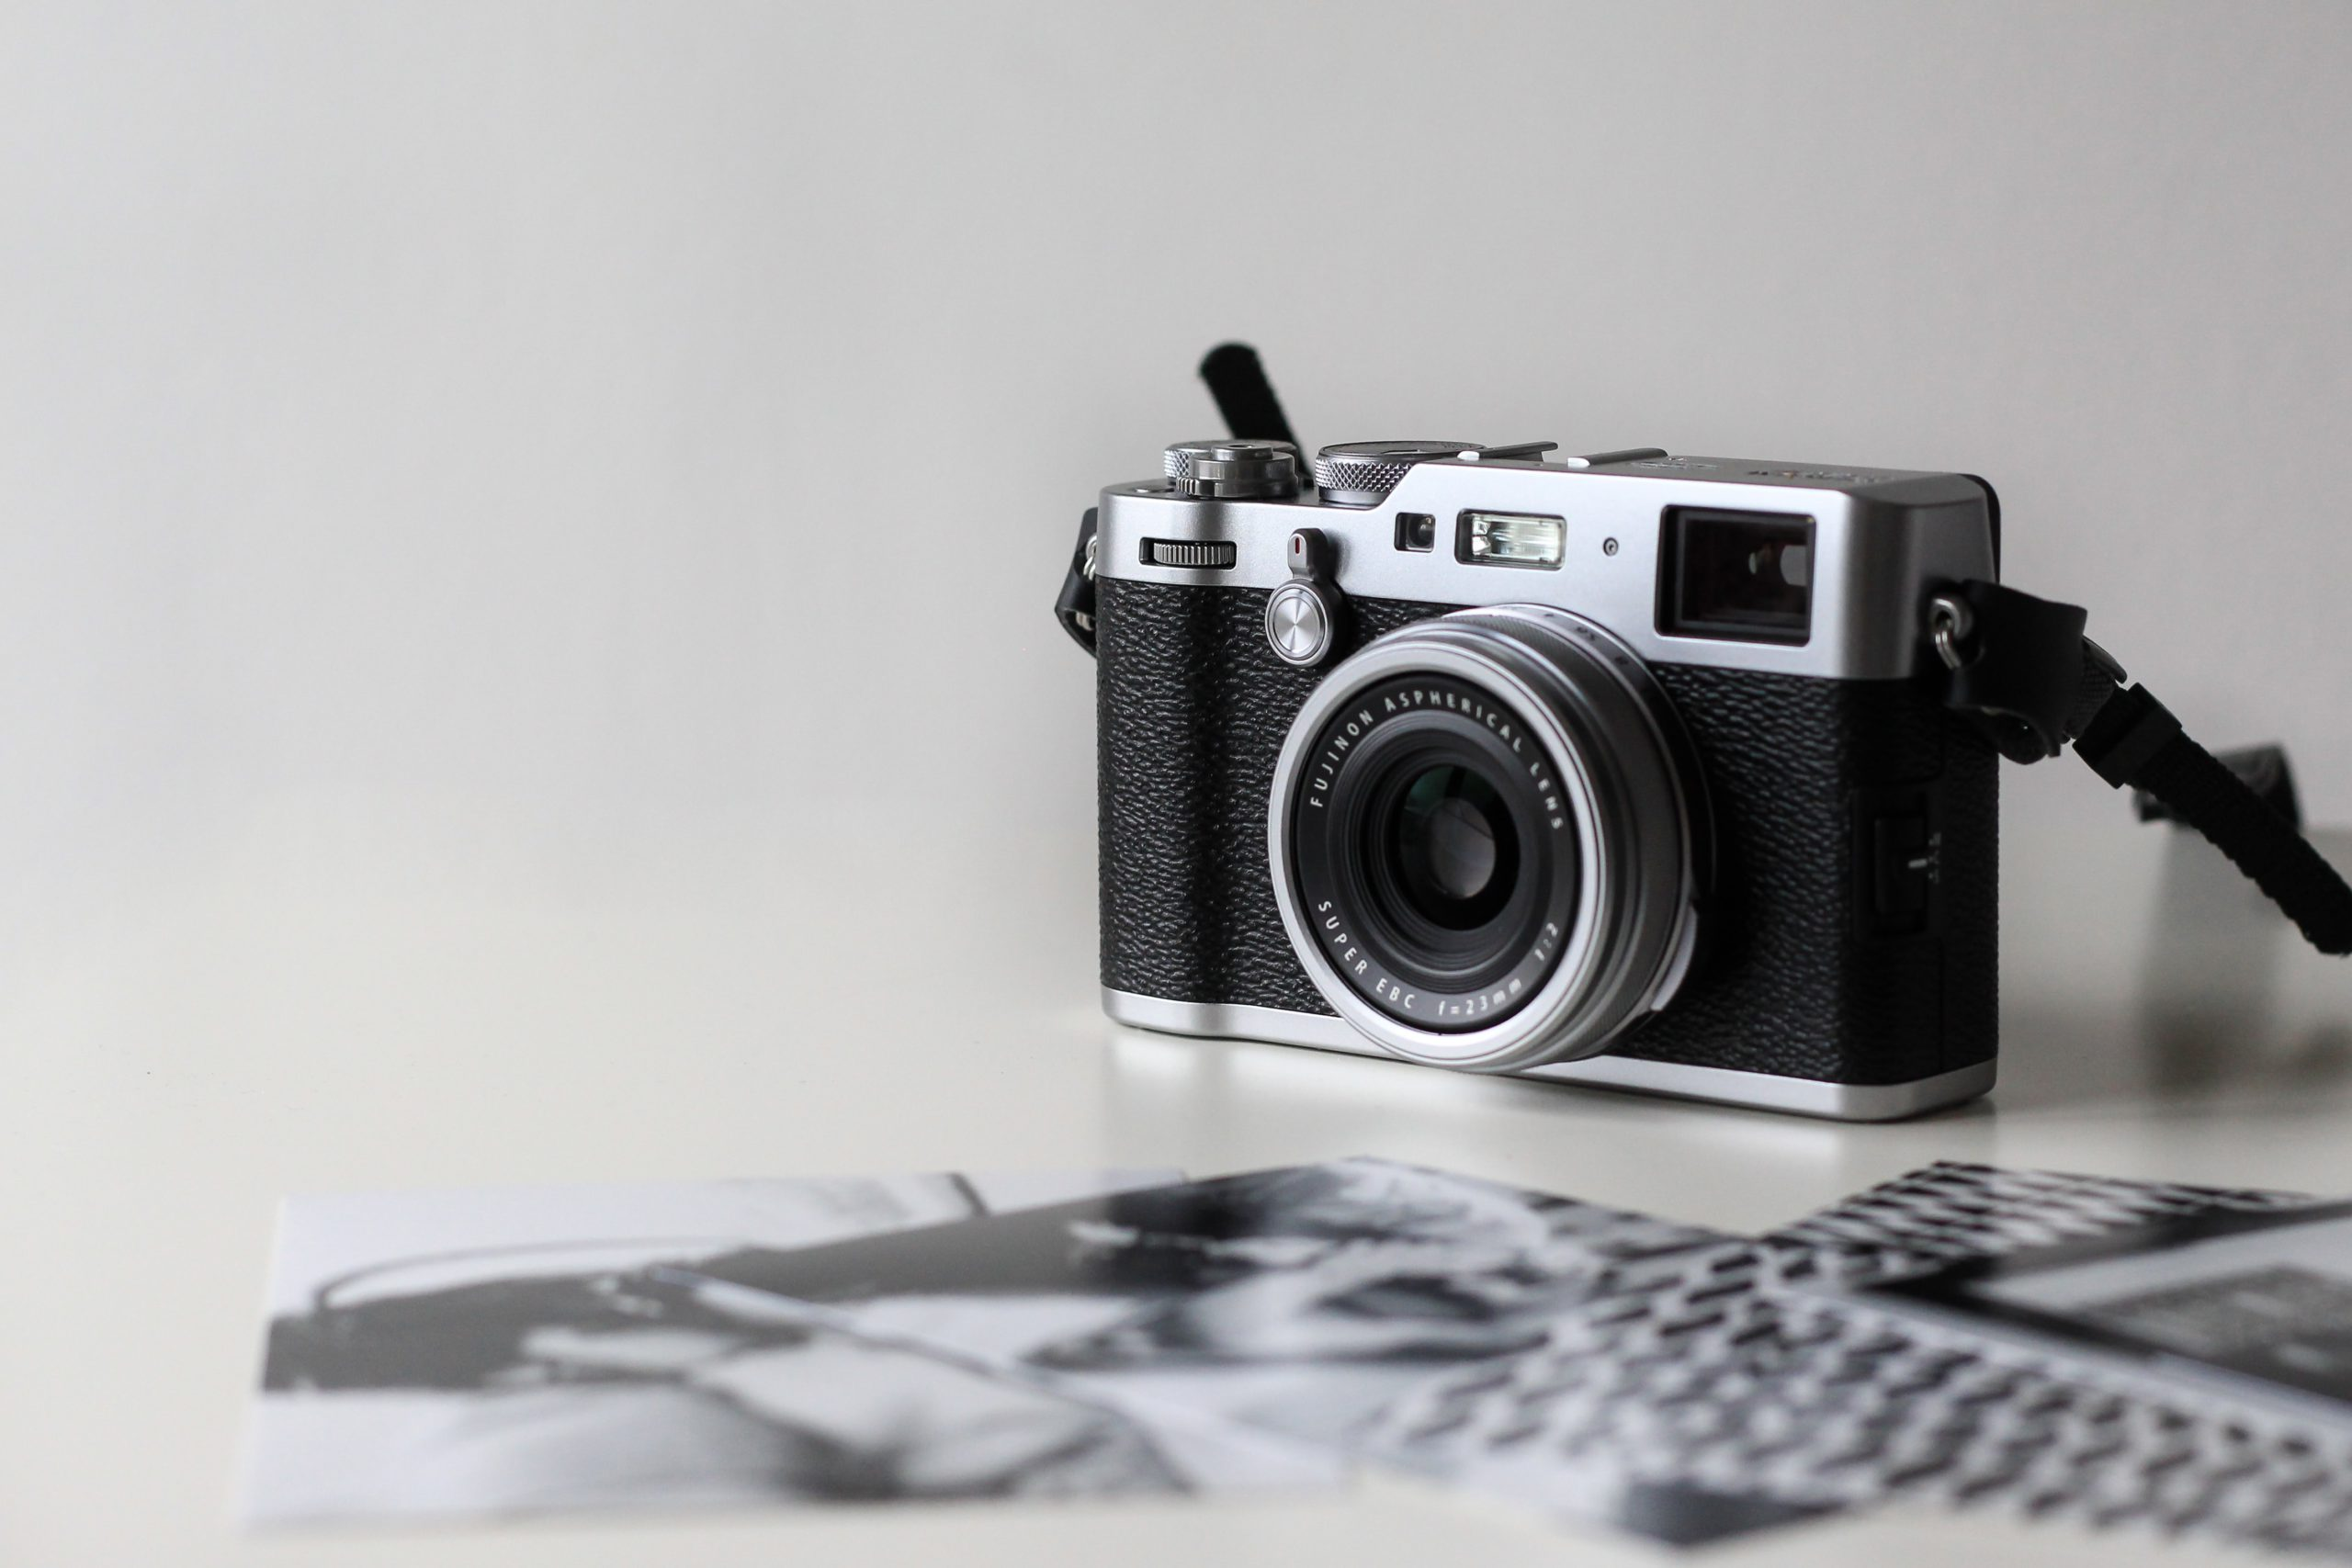 Best point and shoot cameras in 2020